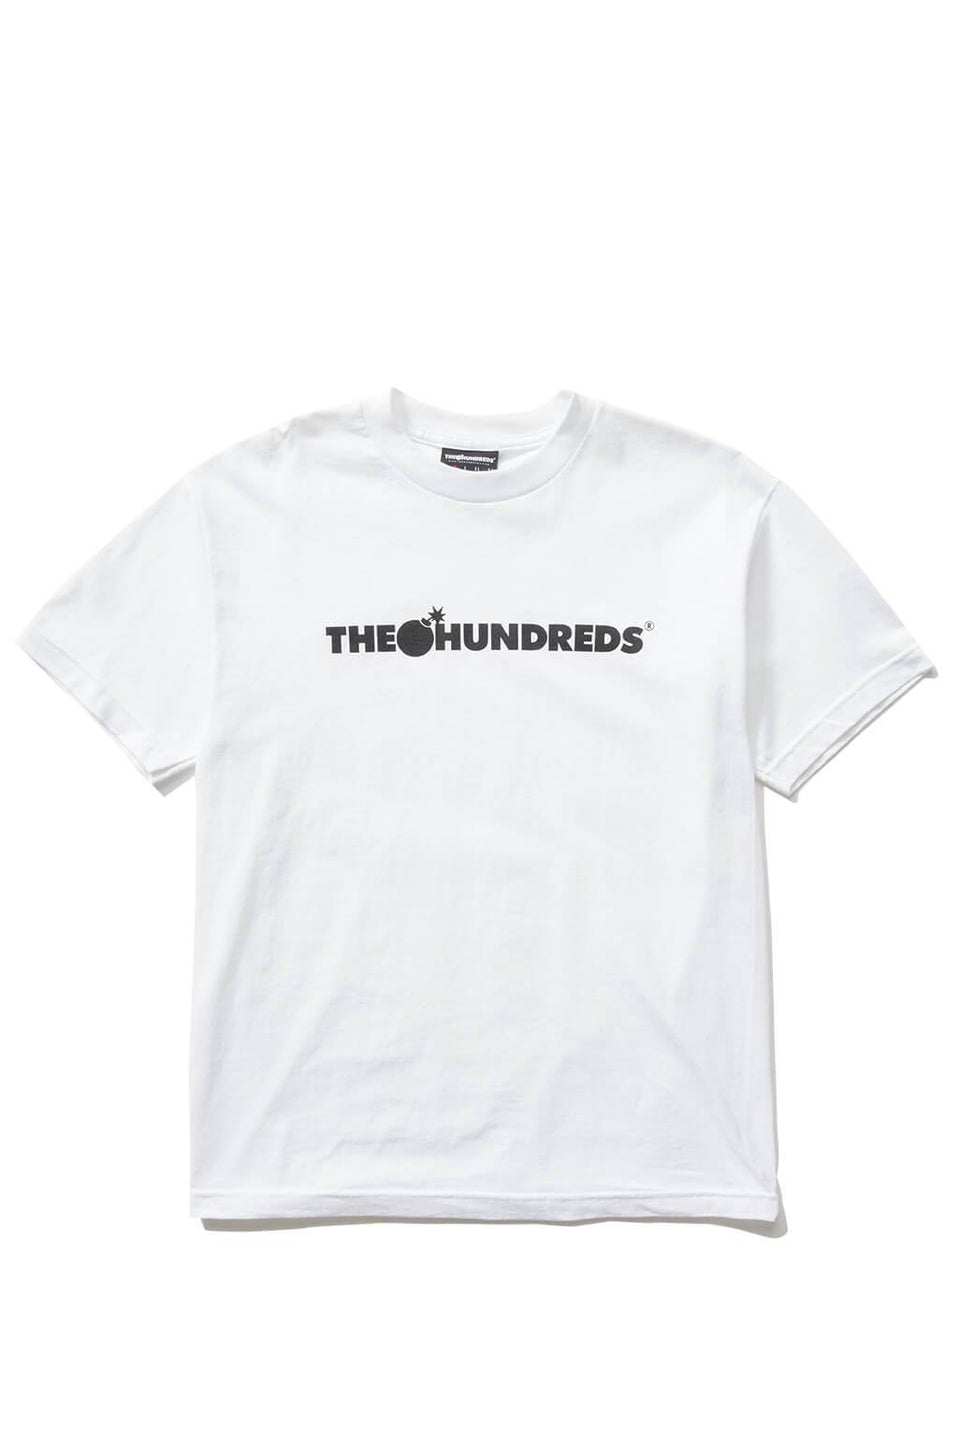 The Hundreds Forever Bar T-Shirt Forest White Front